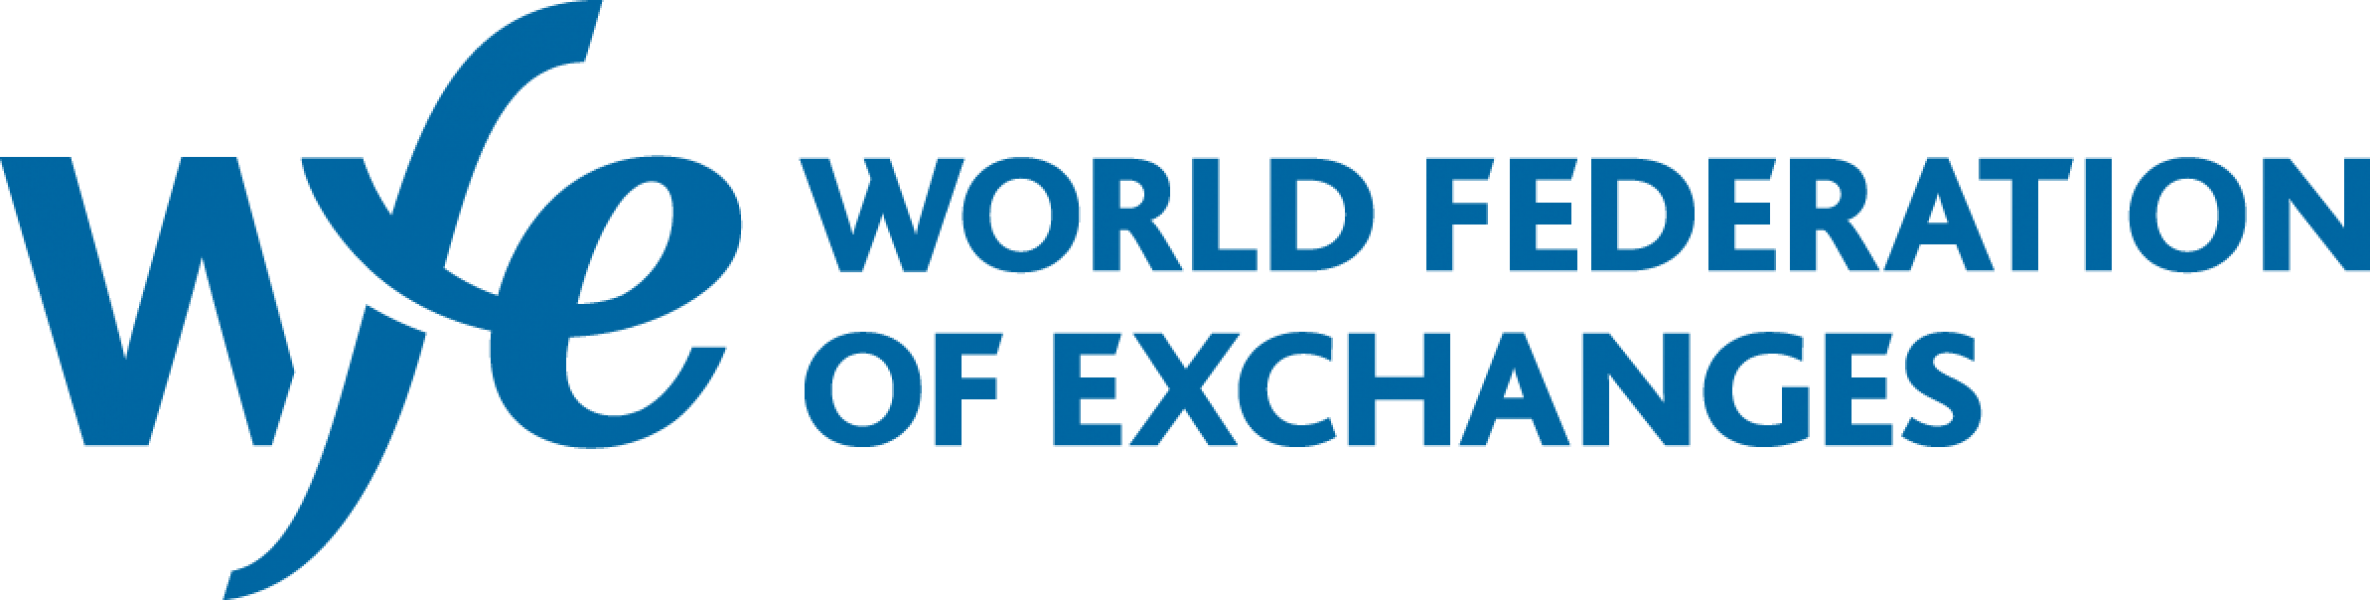 World-Federation-of-Exchanges-Partners-with-Univer